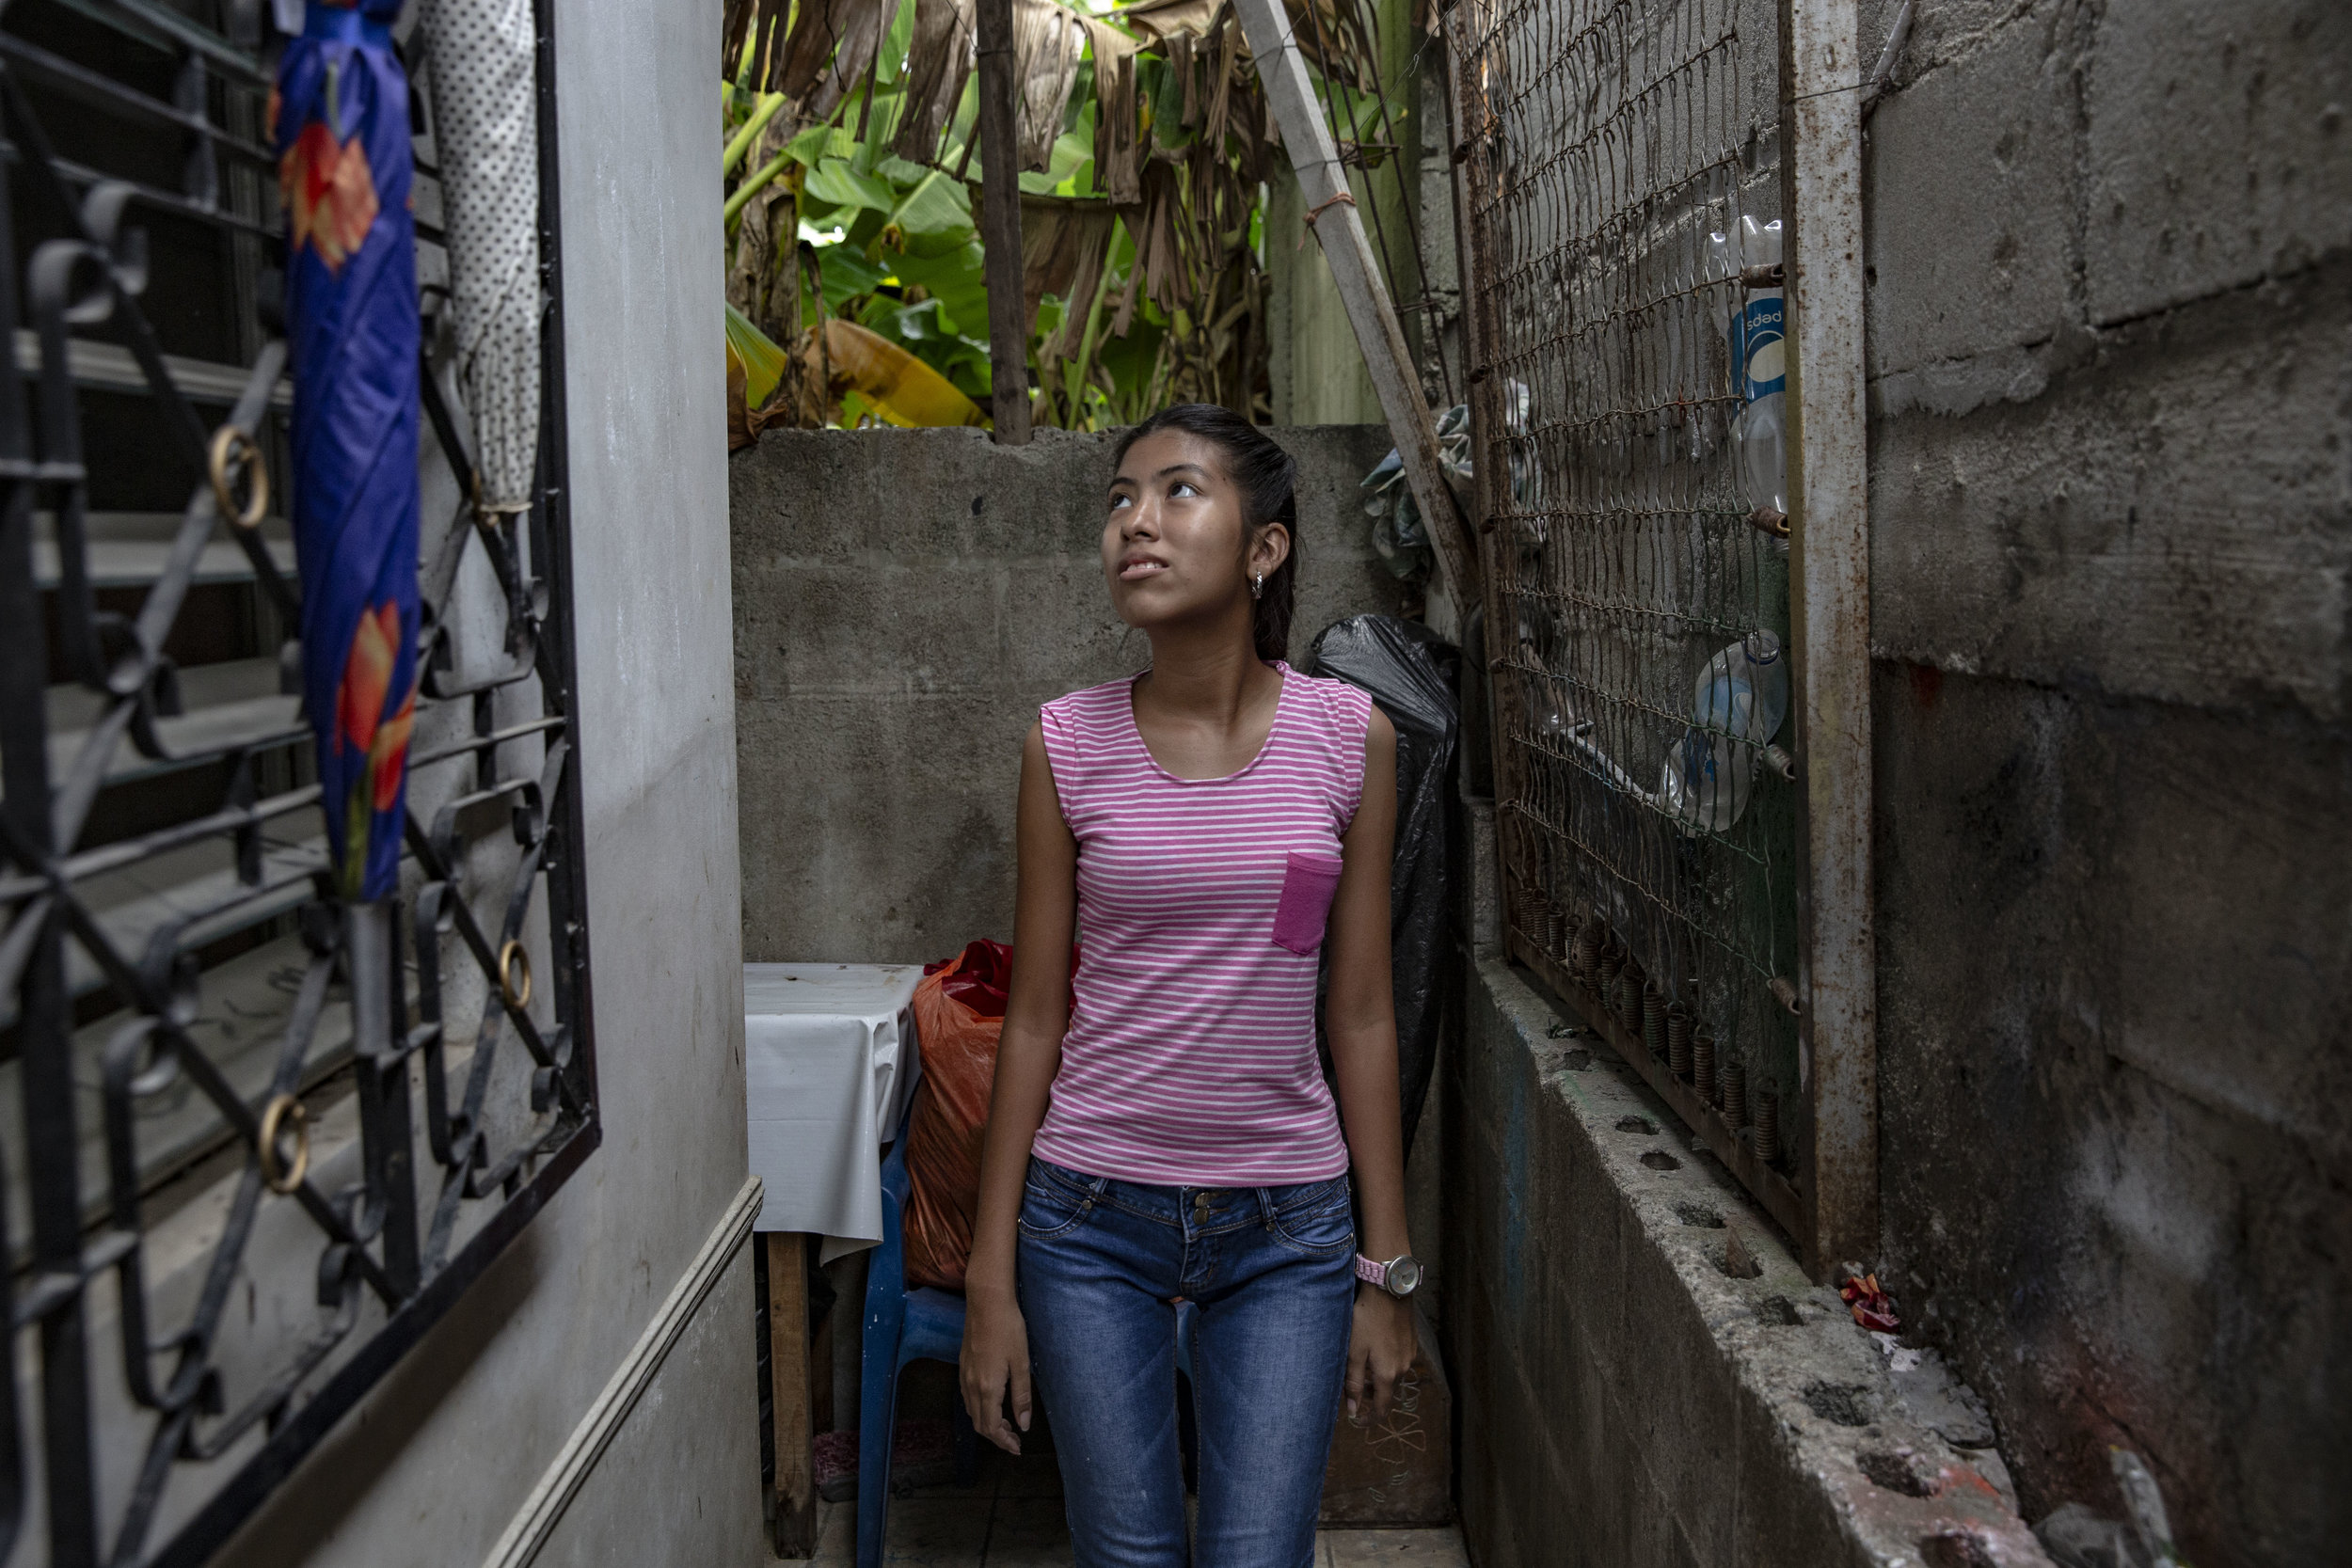 Jeymi Victoria Ortis, 14, operated for scoliosis. Before landing at the Ruth Paz her mother took her to various public clinics, but they couldn't help her. Ruth Paz covered a small symbolic sum for the surgical operation, but even so, it took her family one year to collect all the money to get her the operation.